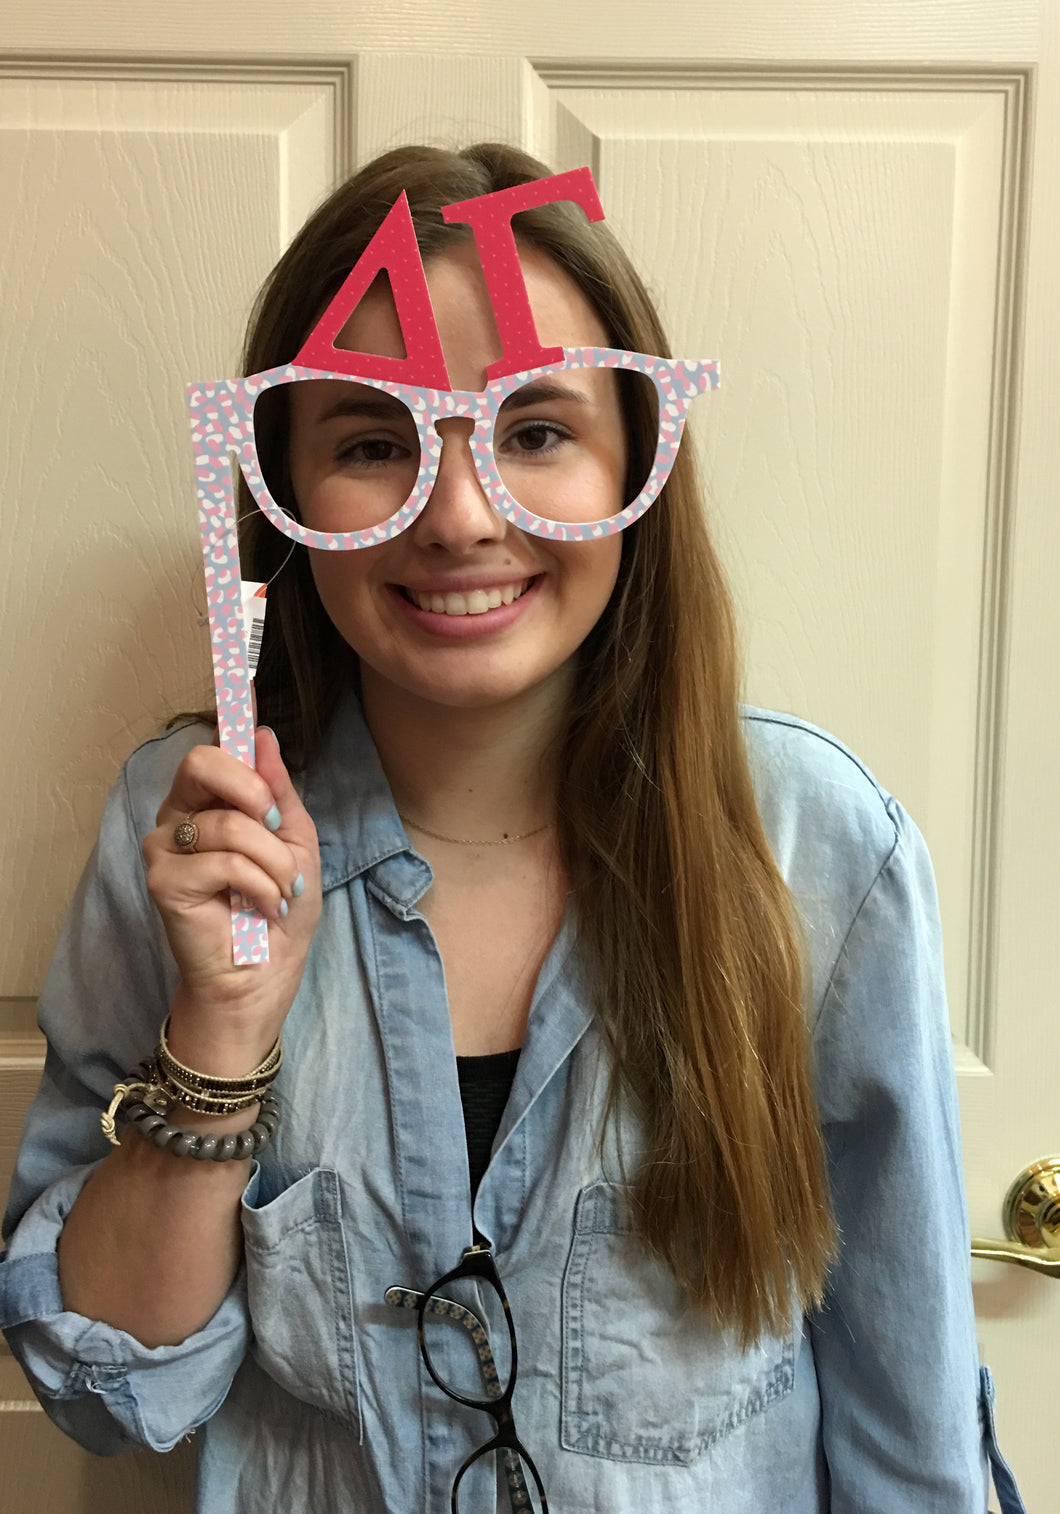 DELTA GAMMA PHOTO PROP